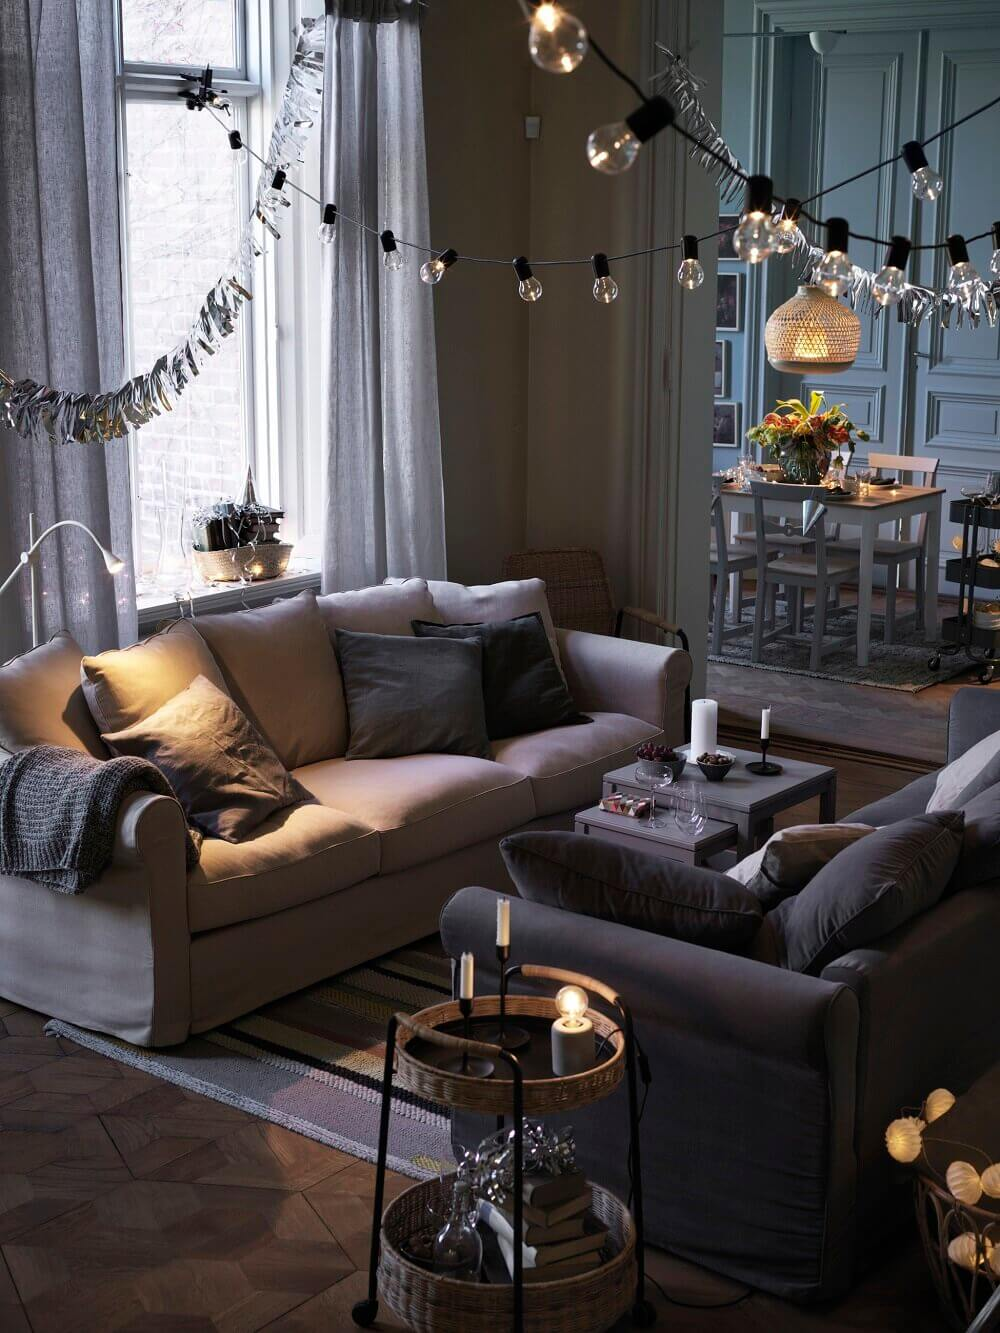 IKEA Christmas Collection 2020: Create Your Own Magical Moments